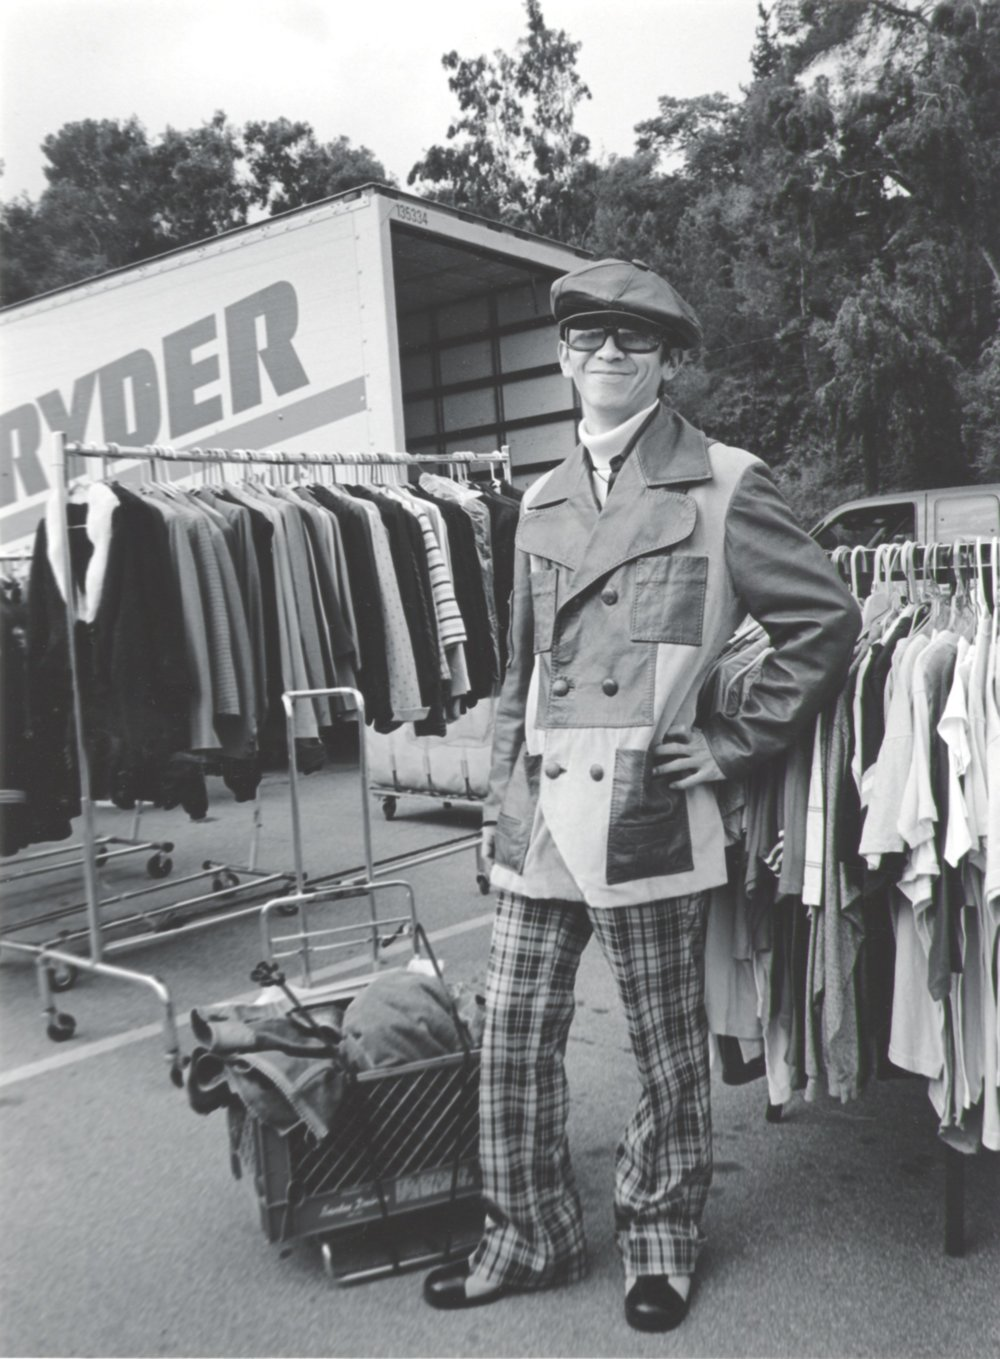 Shopper - Pasadena CA 1999